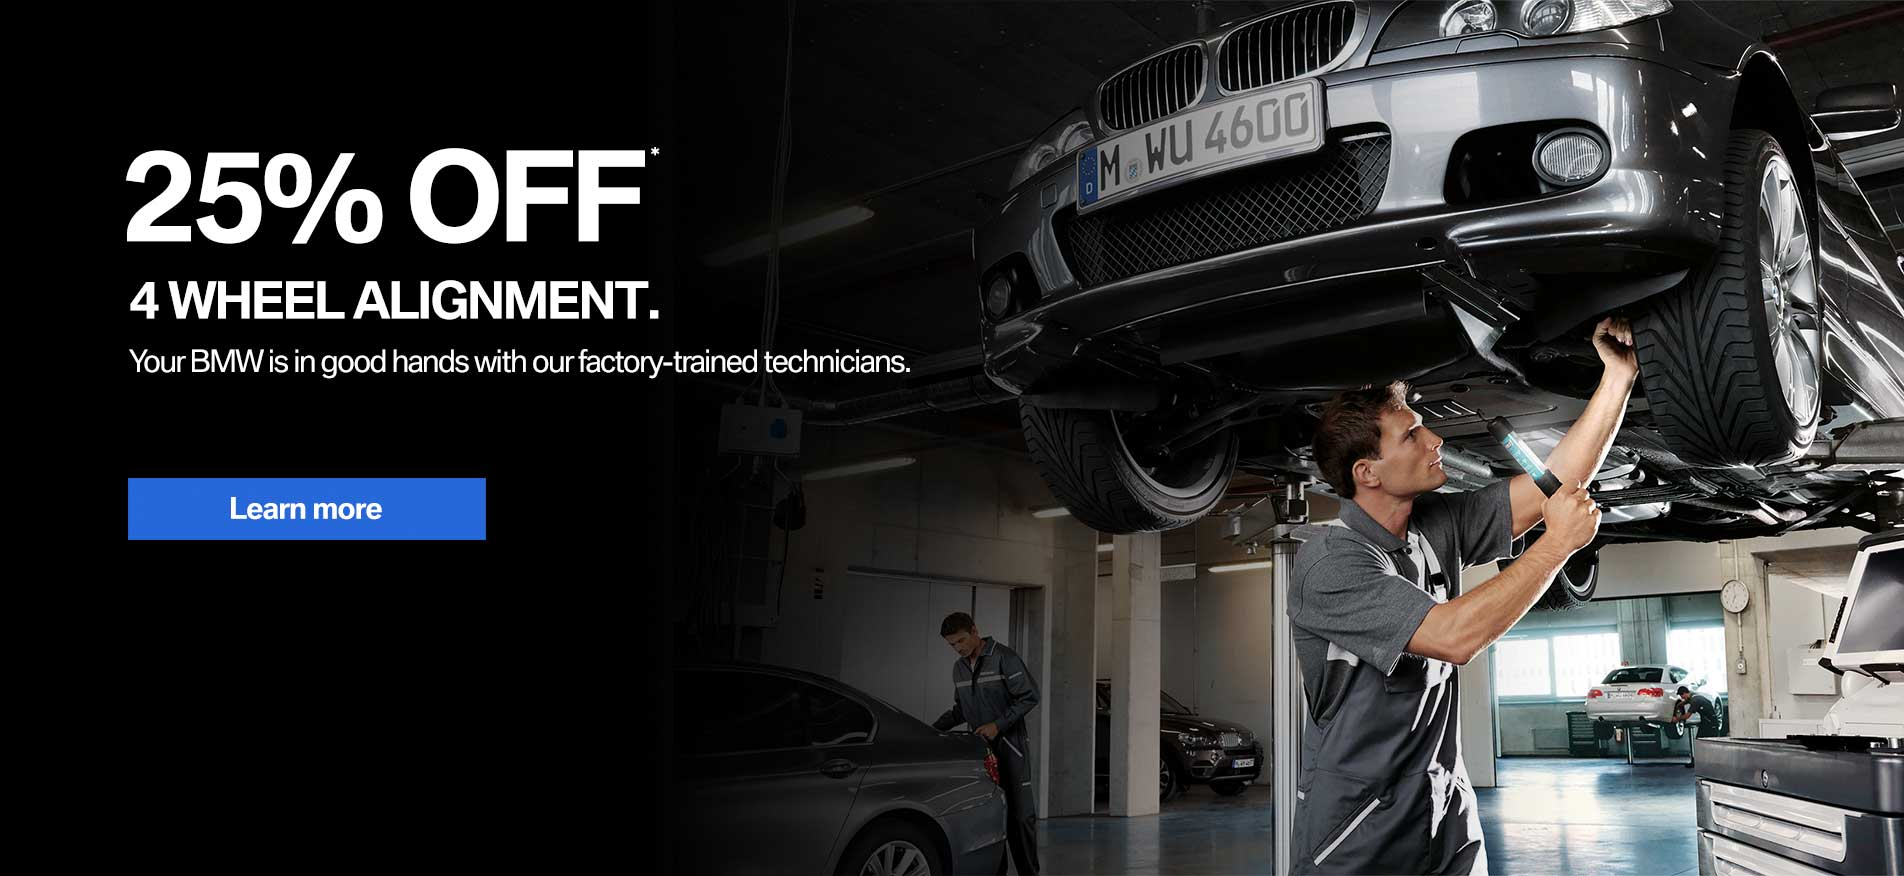 Auto West BMW 25% Off 4 Wheel Alignment